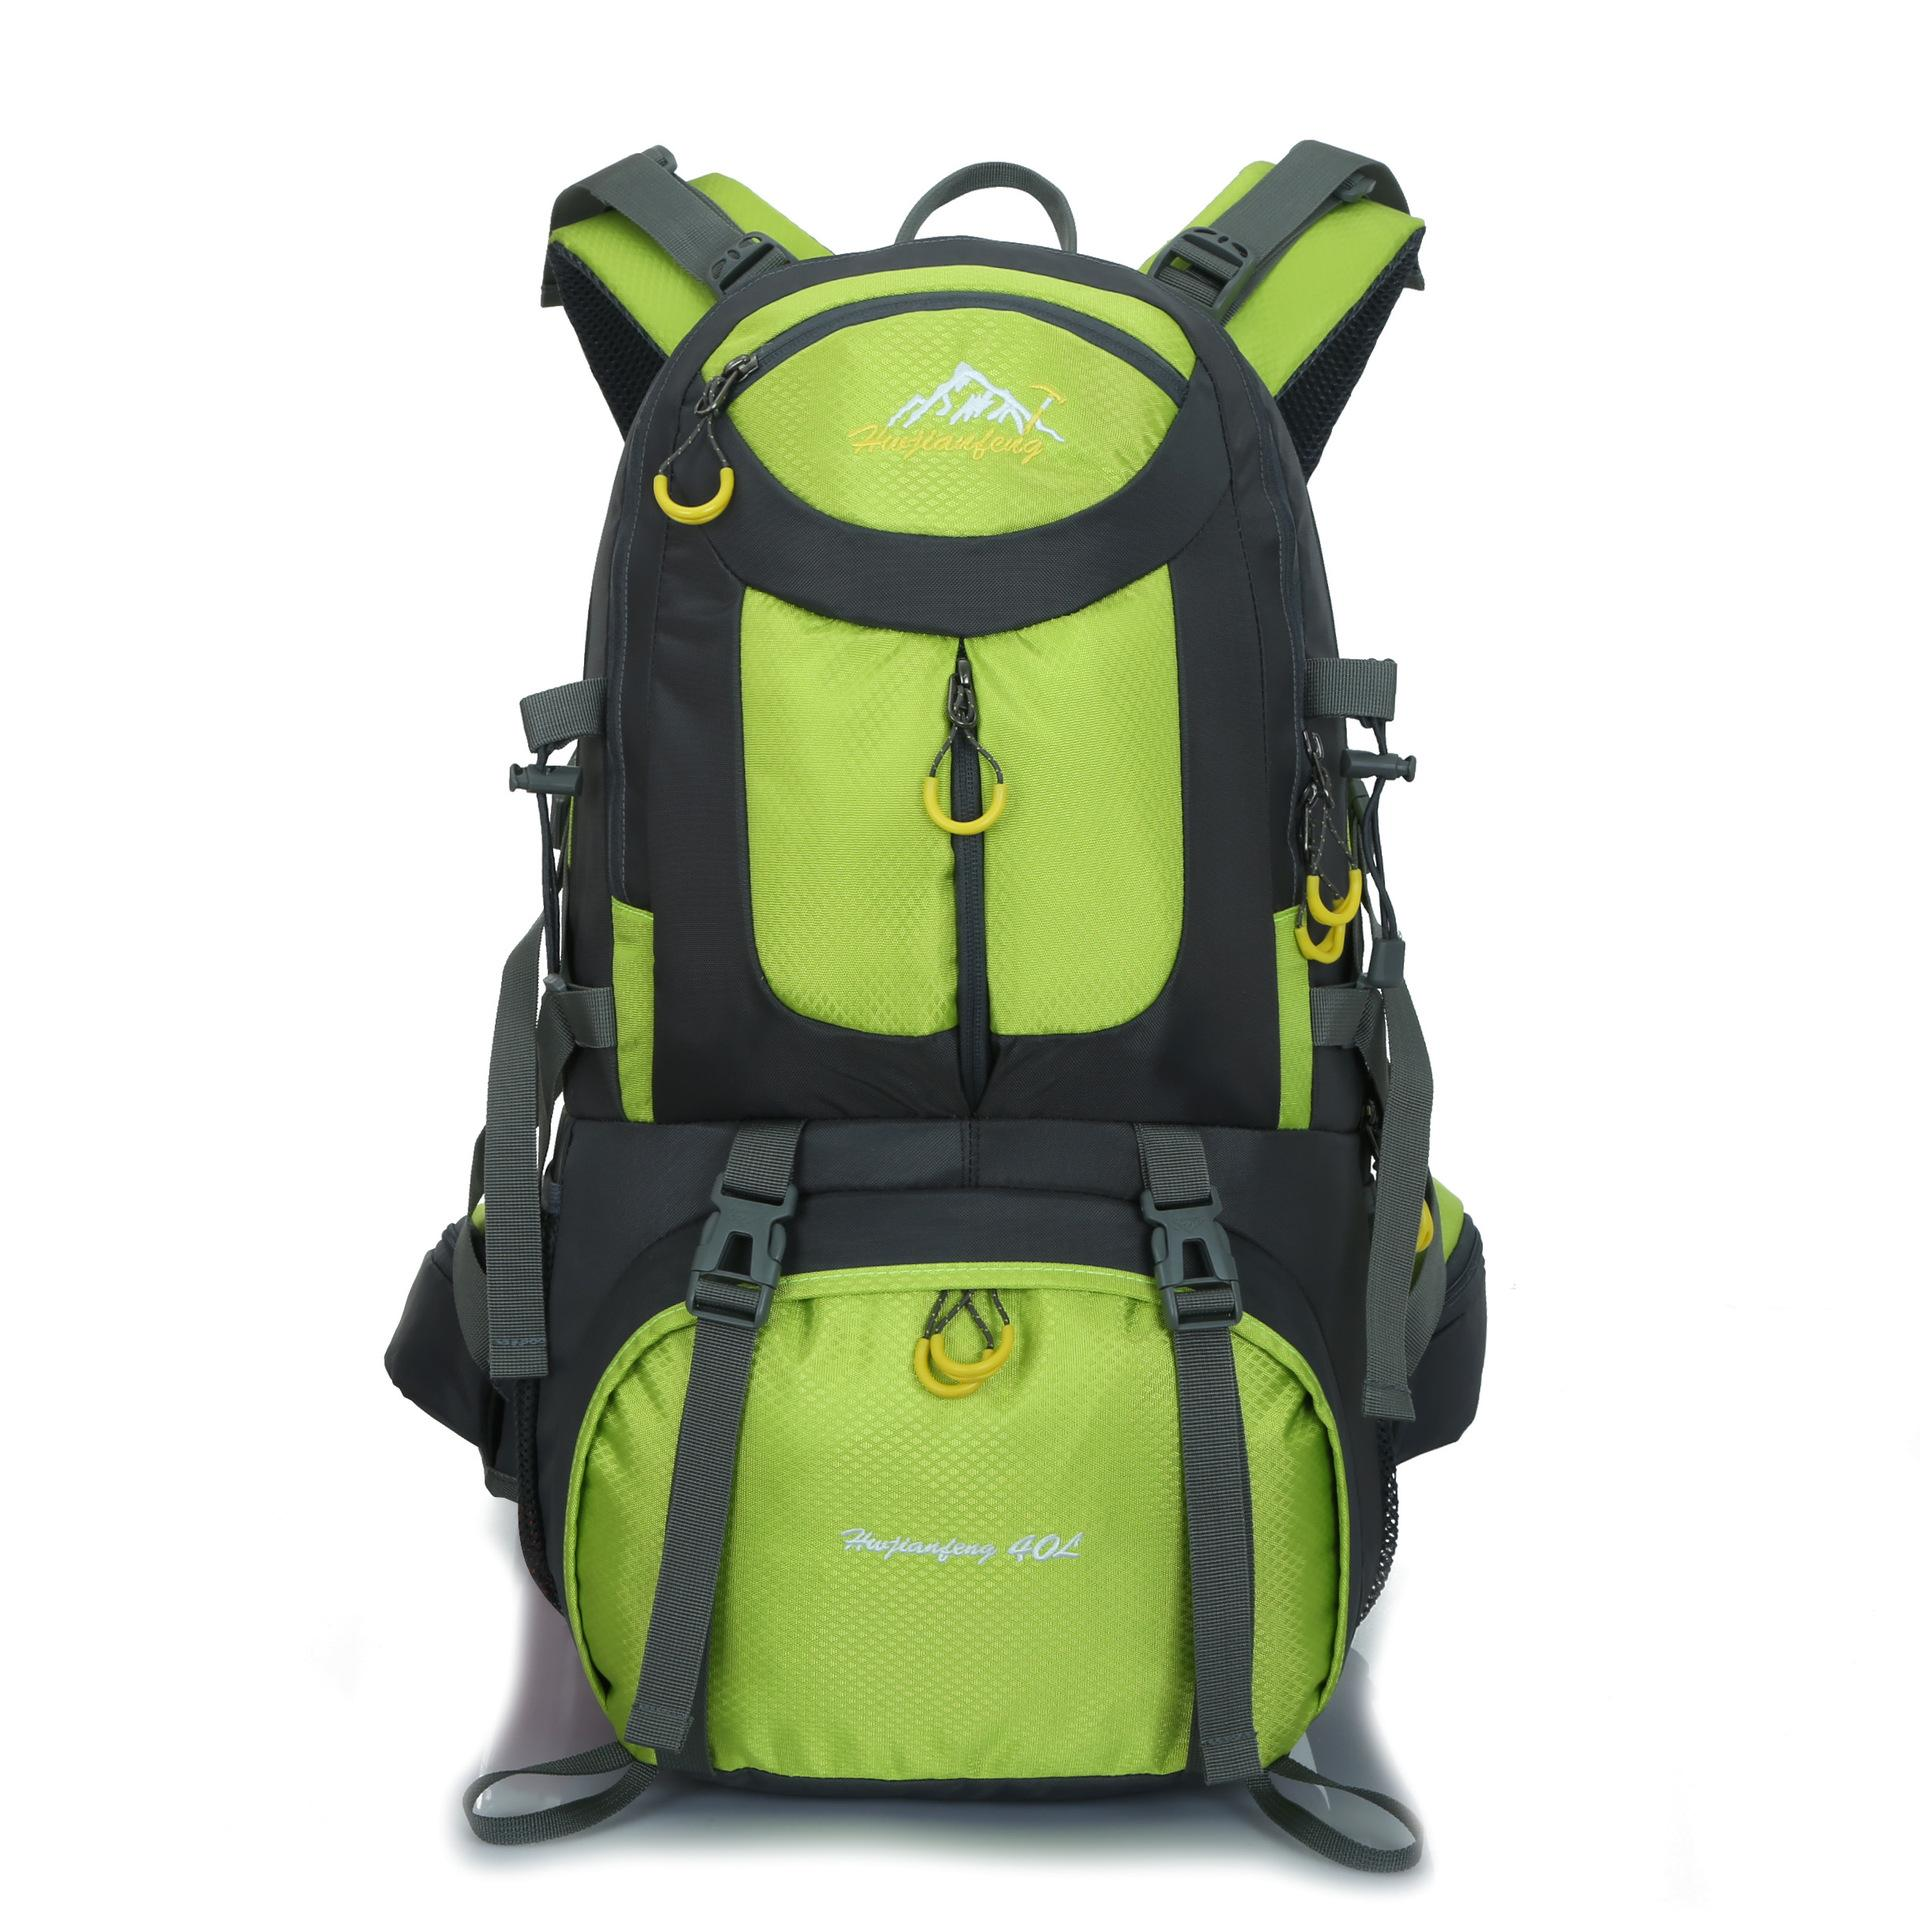 e3254bc8c9 Travel Backpack 50l Professional Outdoor Mountaineering Bag Waterproof  Walking Hiking Backpack Backpack Travel Bag